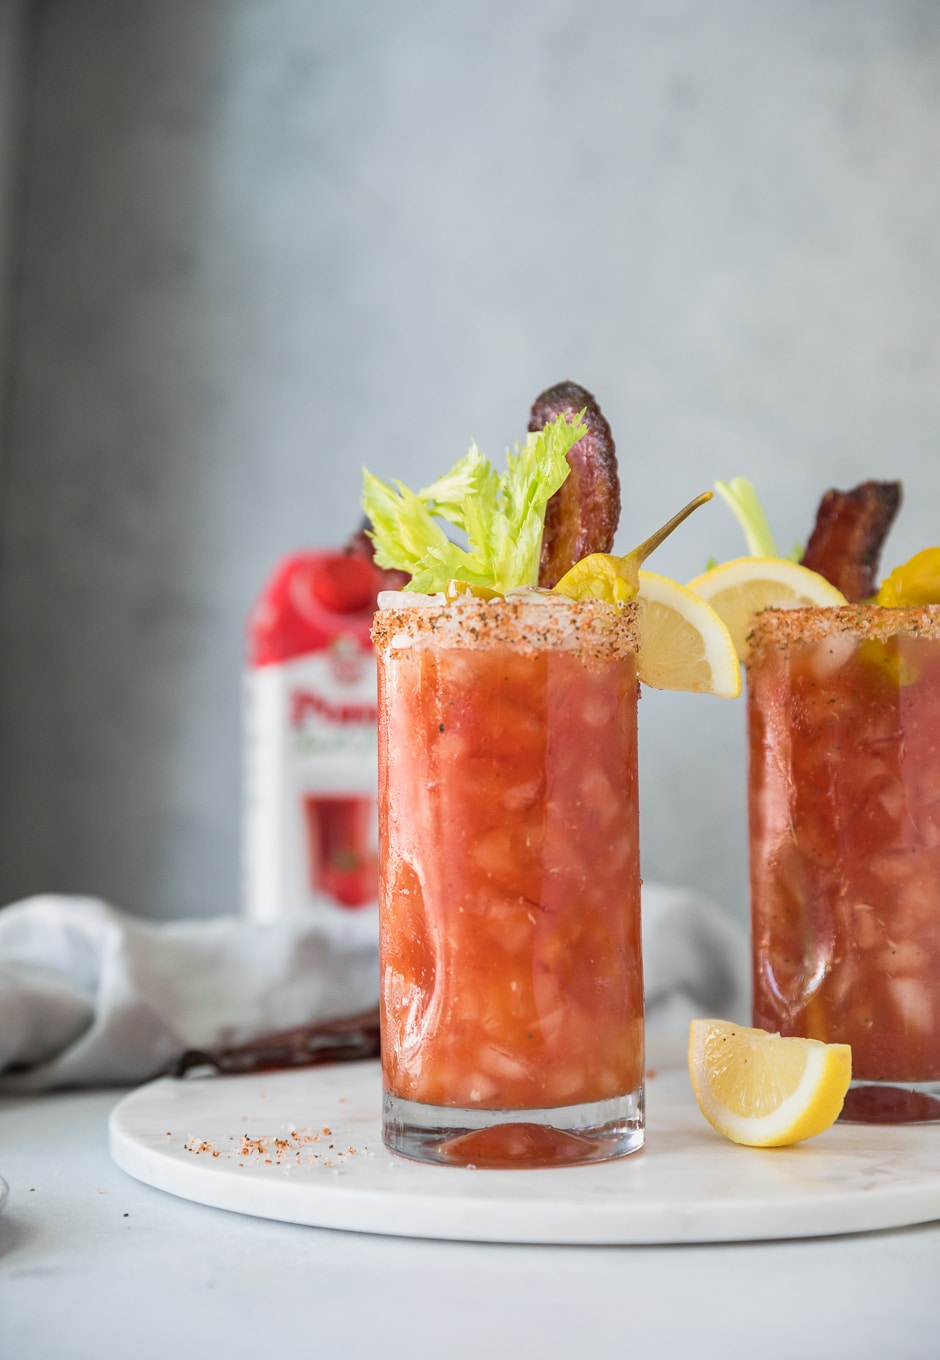 Forward facing shot of 2 bloody marys garnished with lemon, celery, and candied bacon with a carton of tomato juice in the background